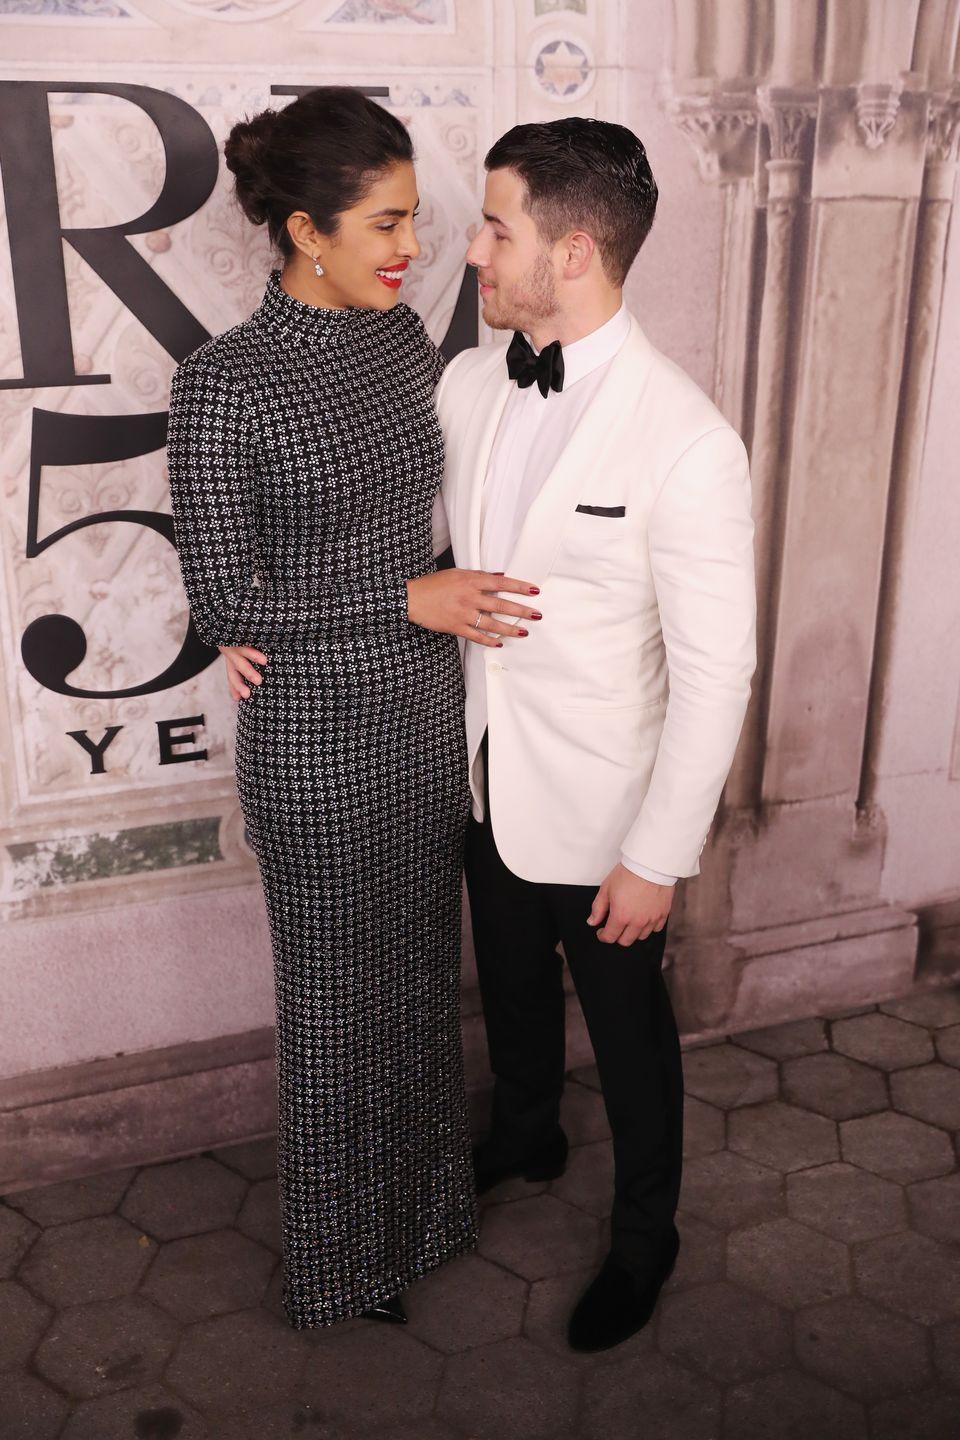 <p><strong>Age gap: </strong>10 years </p><p>Priyanka Chopra and Nick Jonas got married in 2018 after a whirlwind romance. The singer, who is 10 years Priyanka's junior, proposed after just two months of dating and they were married within the year. The couple first met at the 2017 Met Gala when they were both dressed by Ralph Lauren. </p>